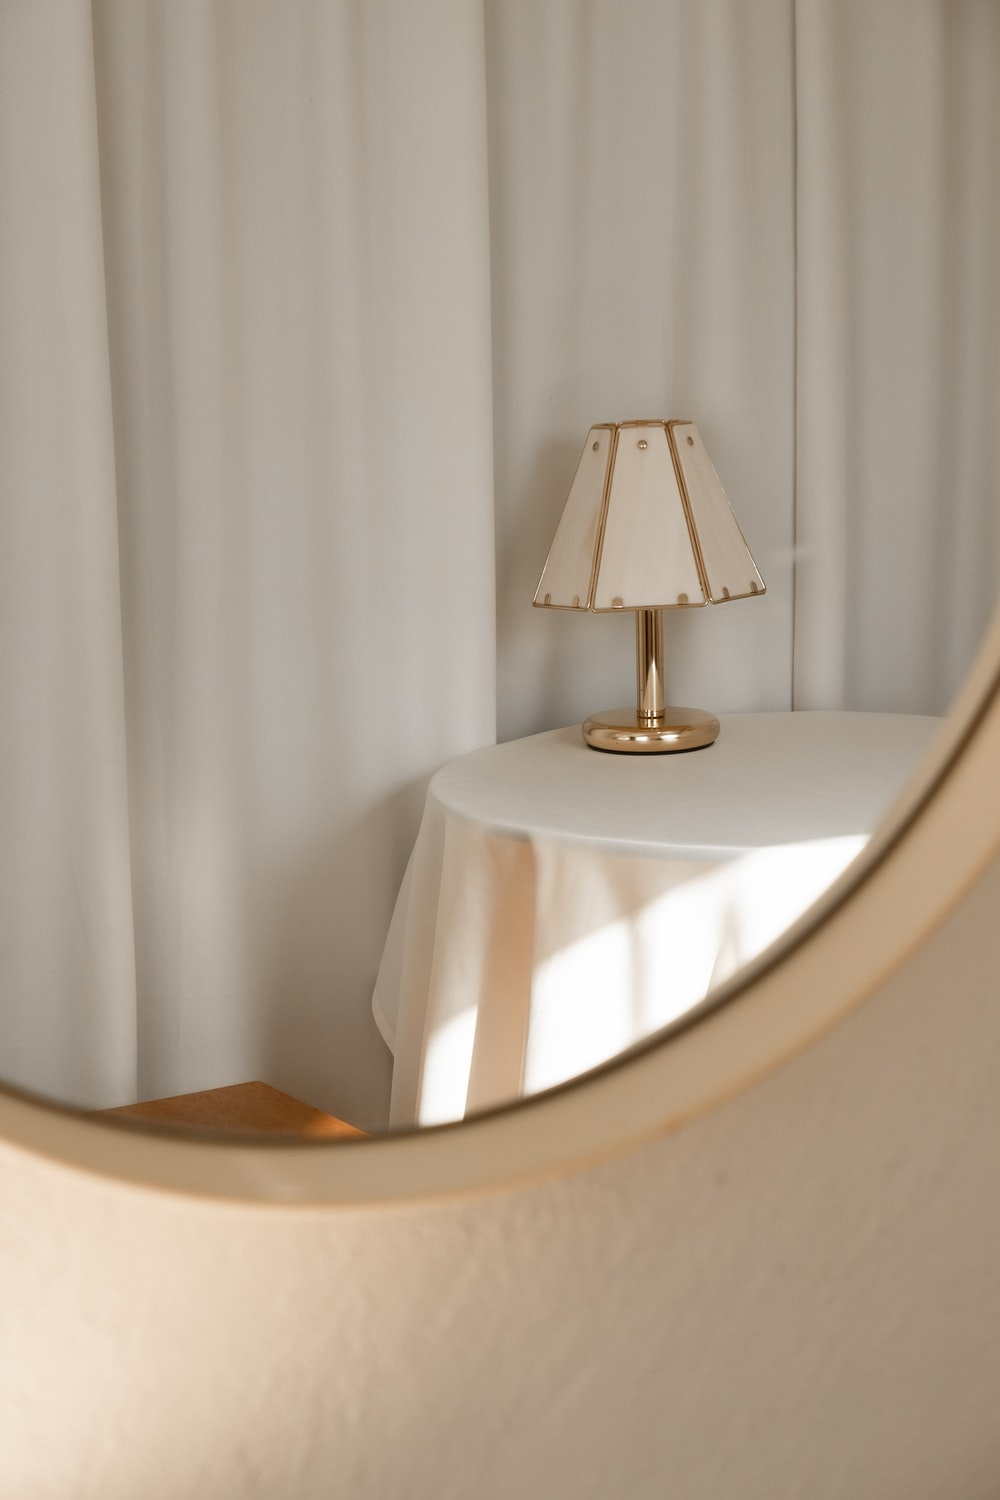 white and gold table lamp on whtie round table